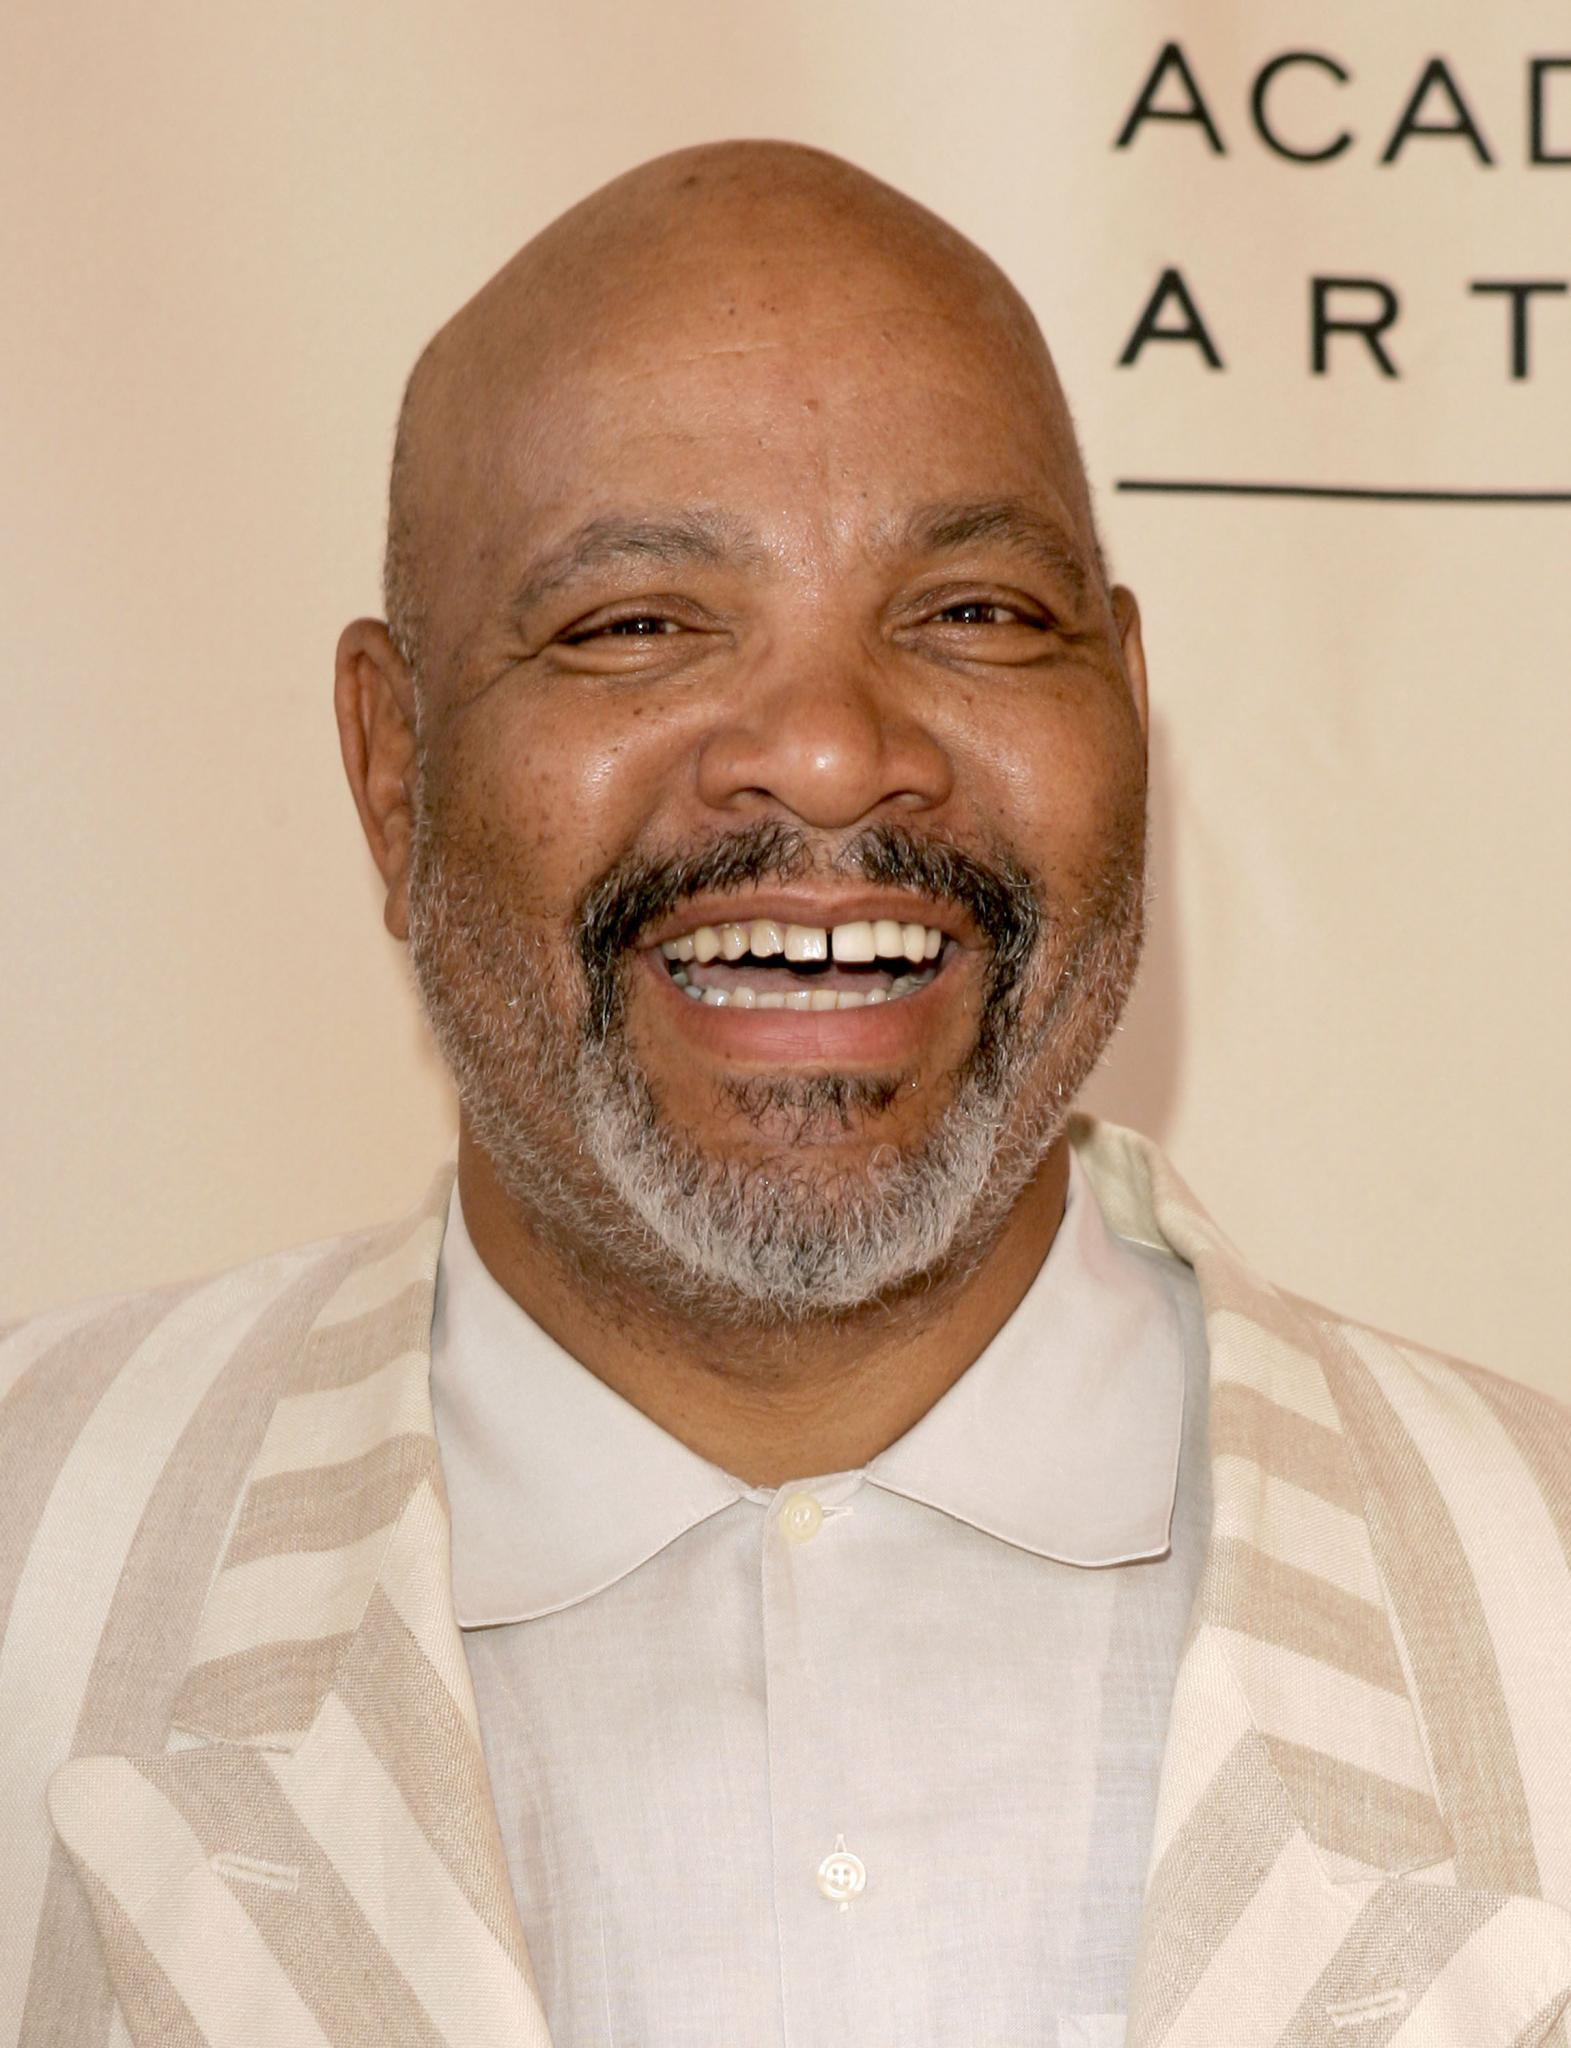 James Avery, Dead at 65